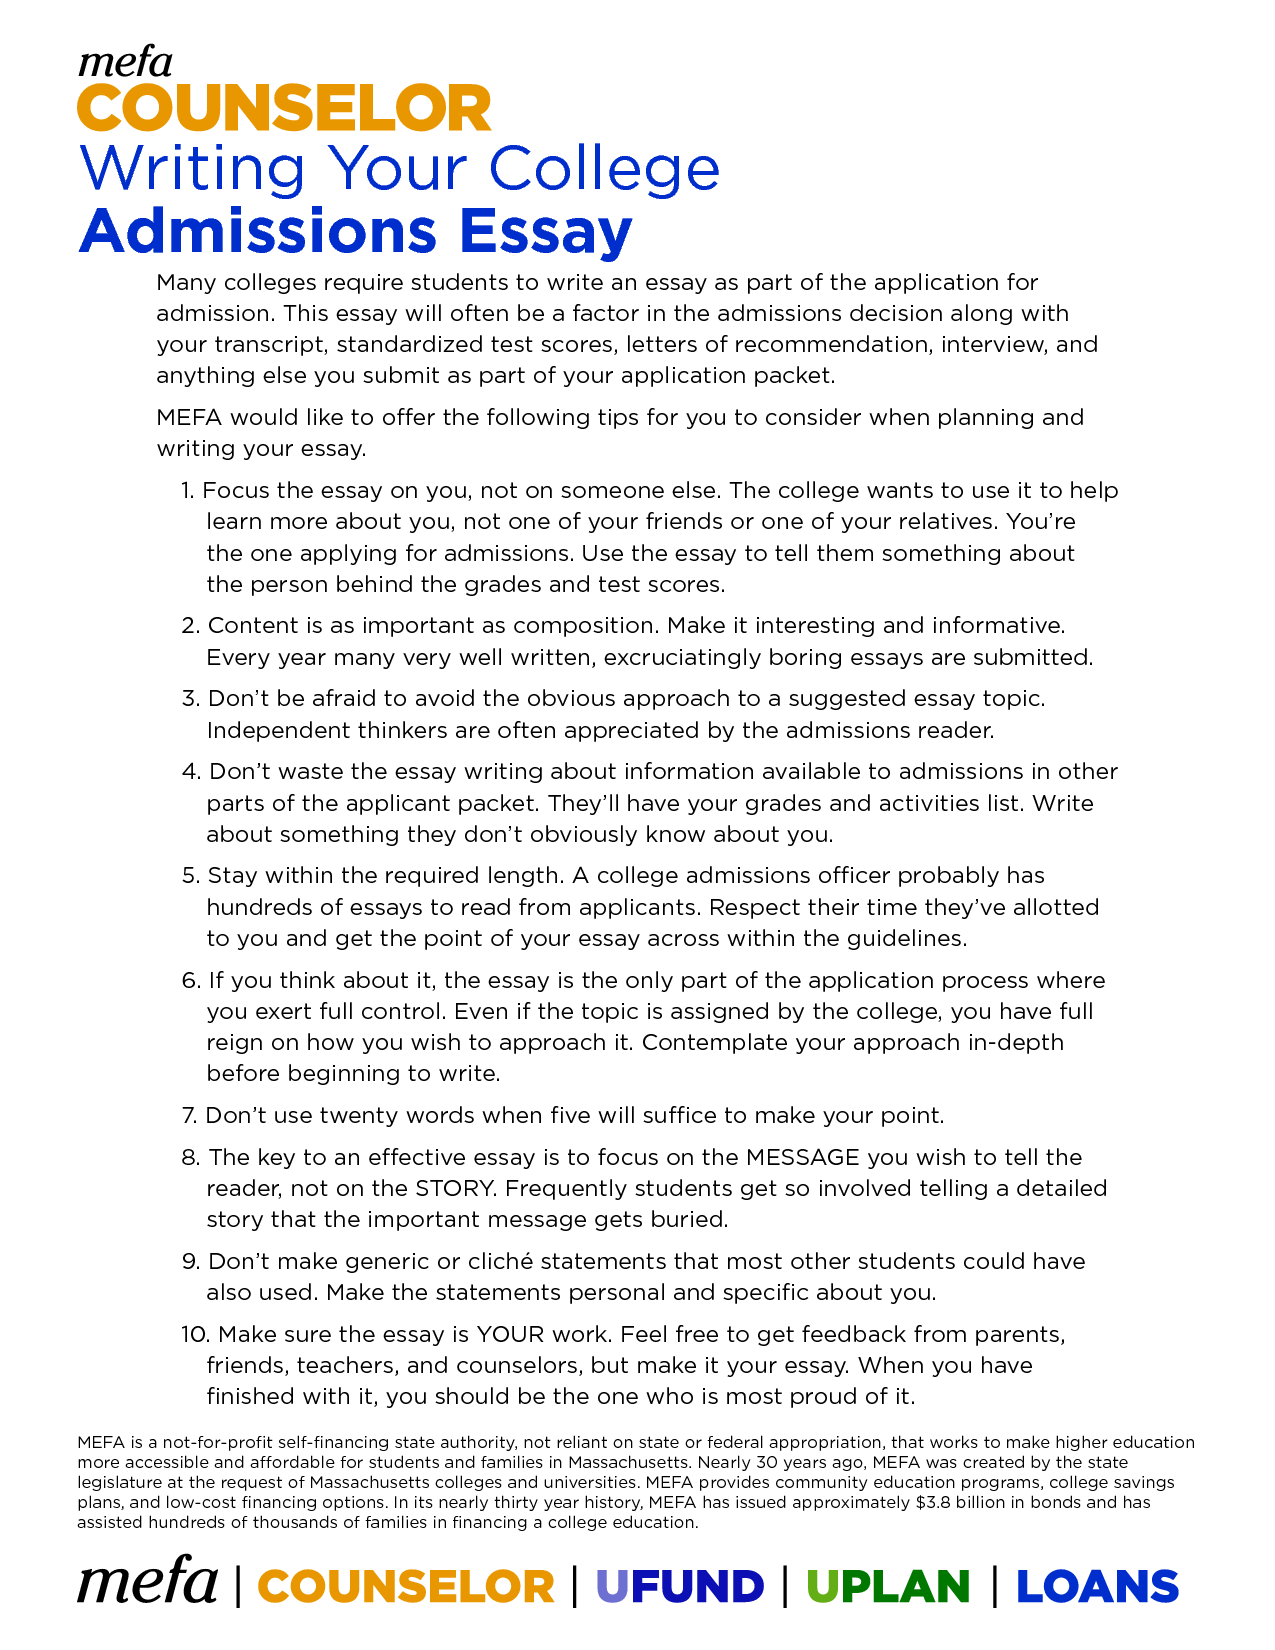 Help with writing college essay